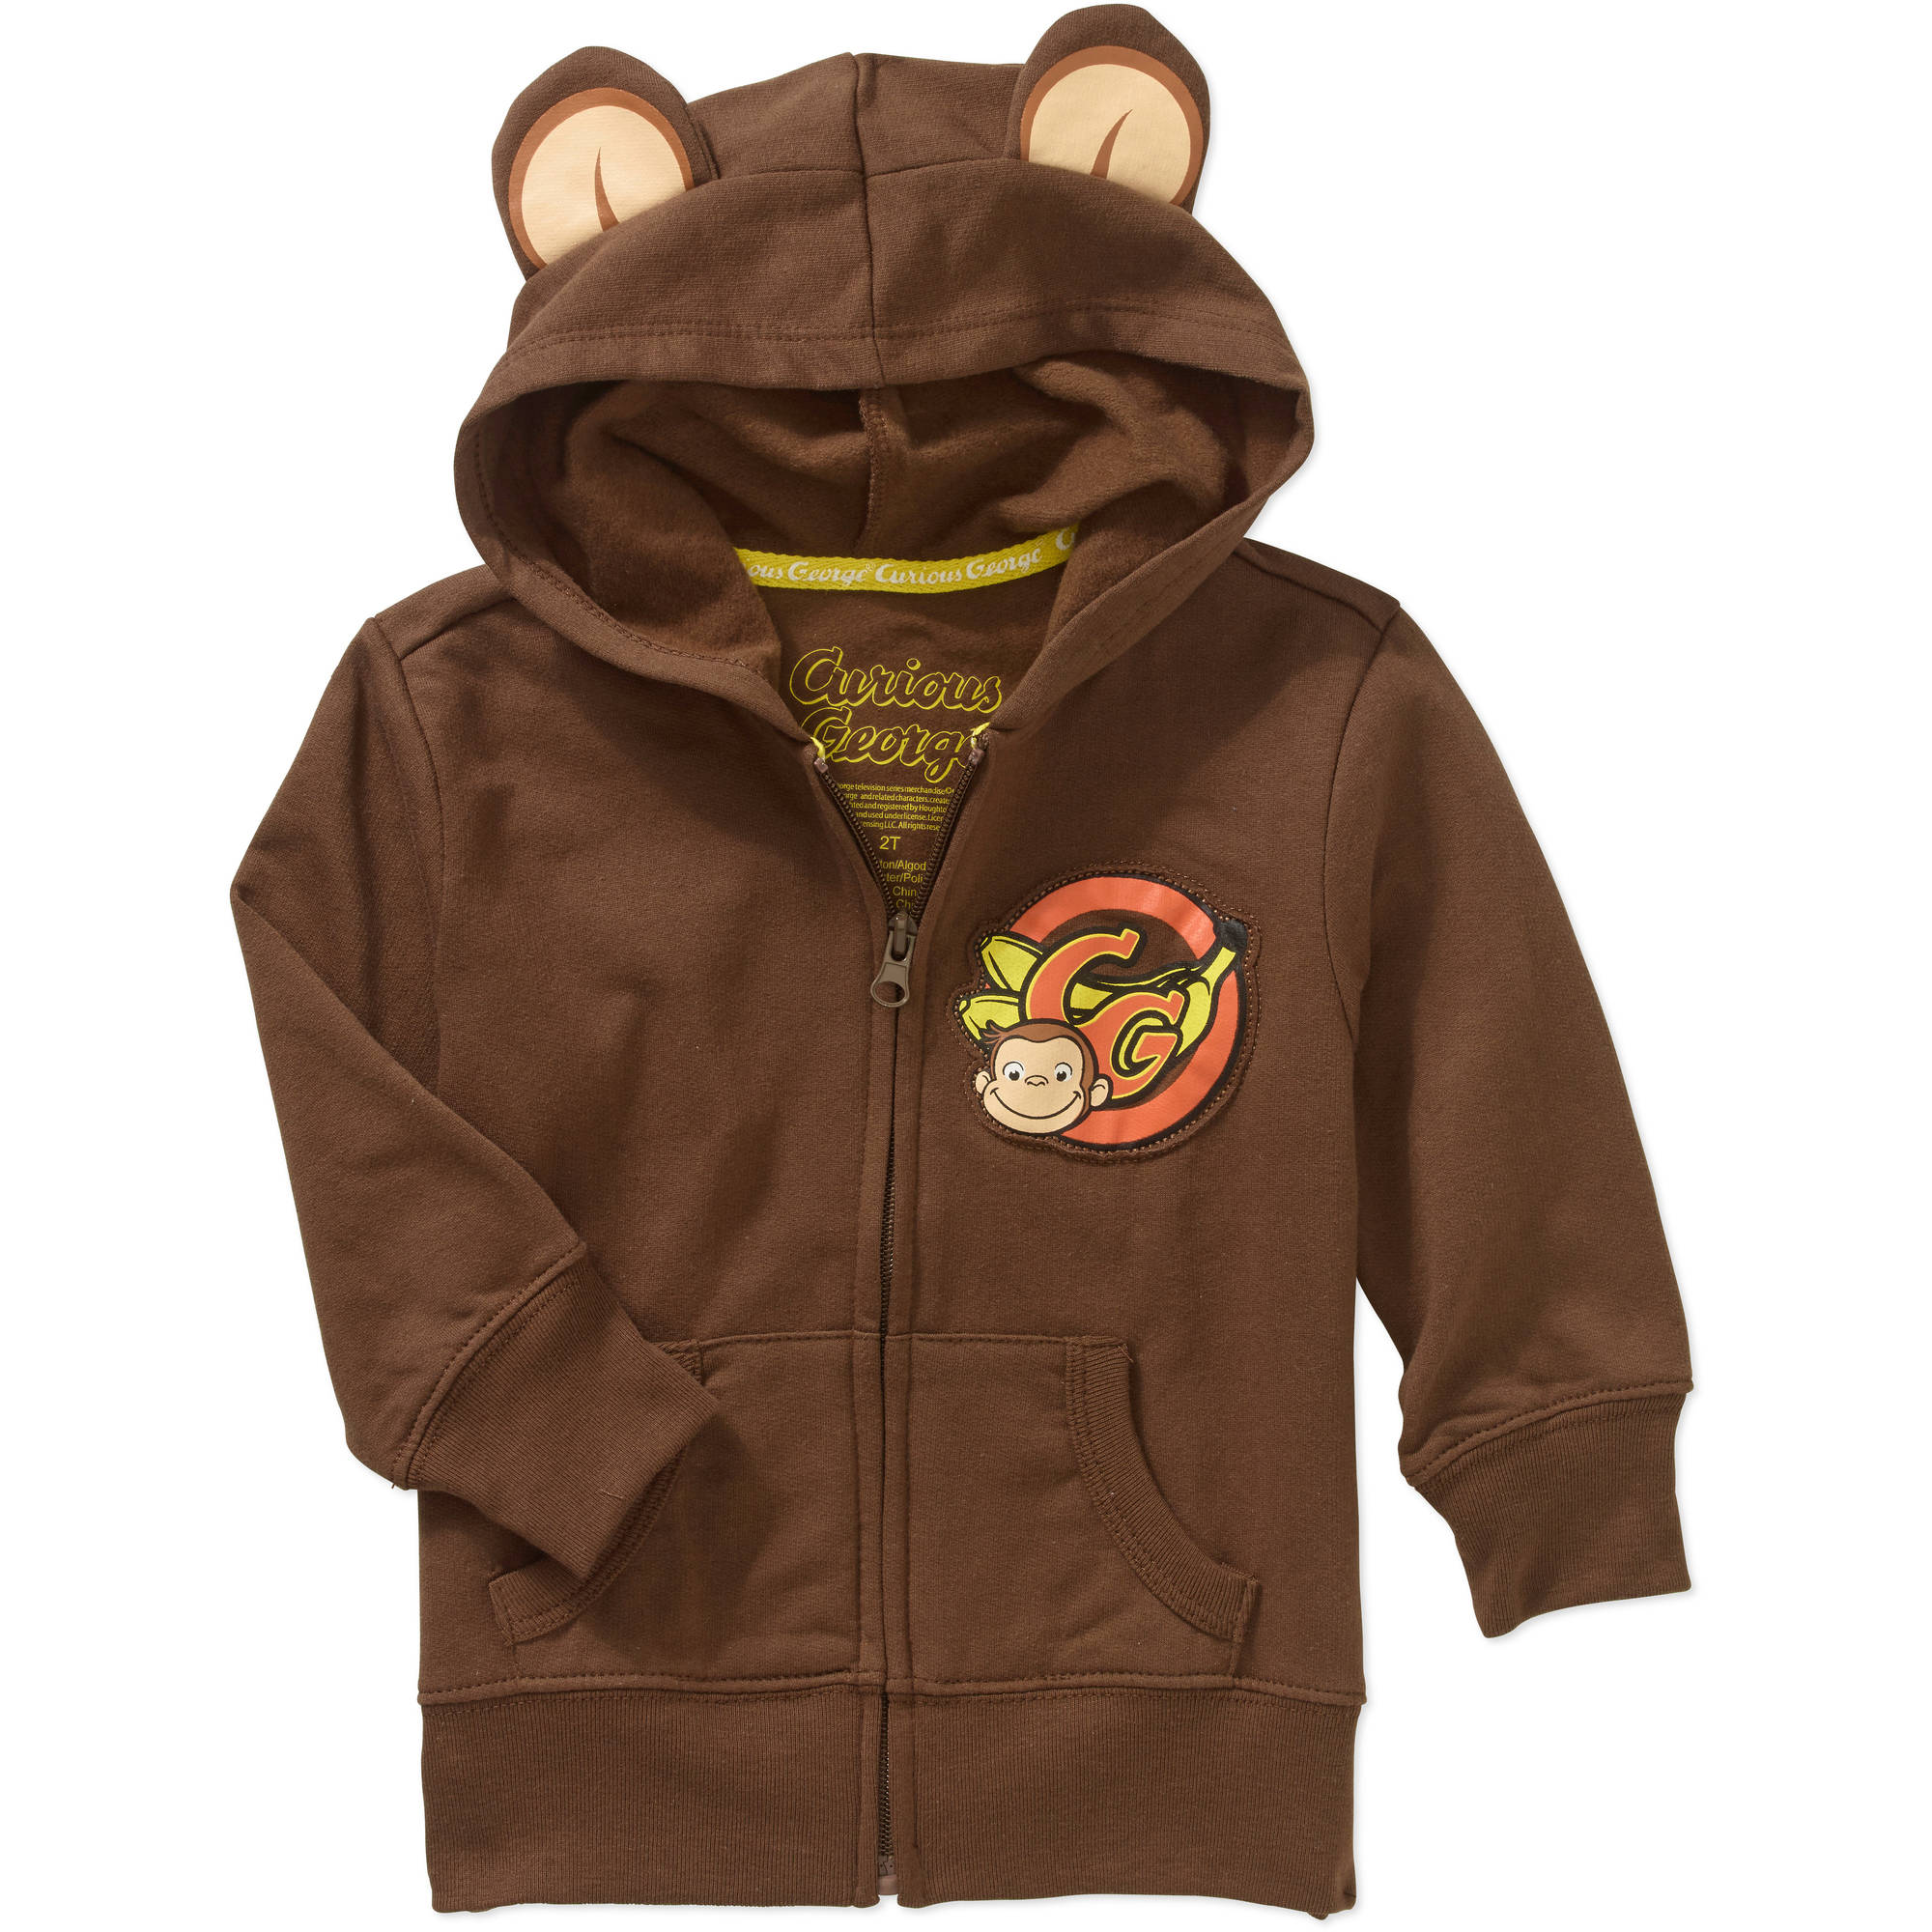 CURIOUS GEORGE BROWN HOODIE JACKET 18-24 MONTHS BOYS GIRLS